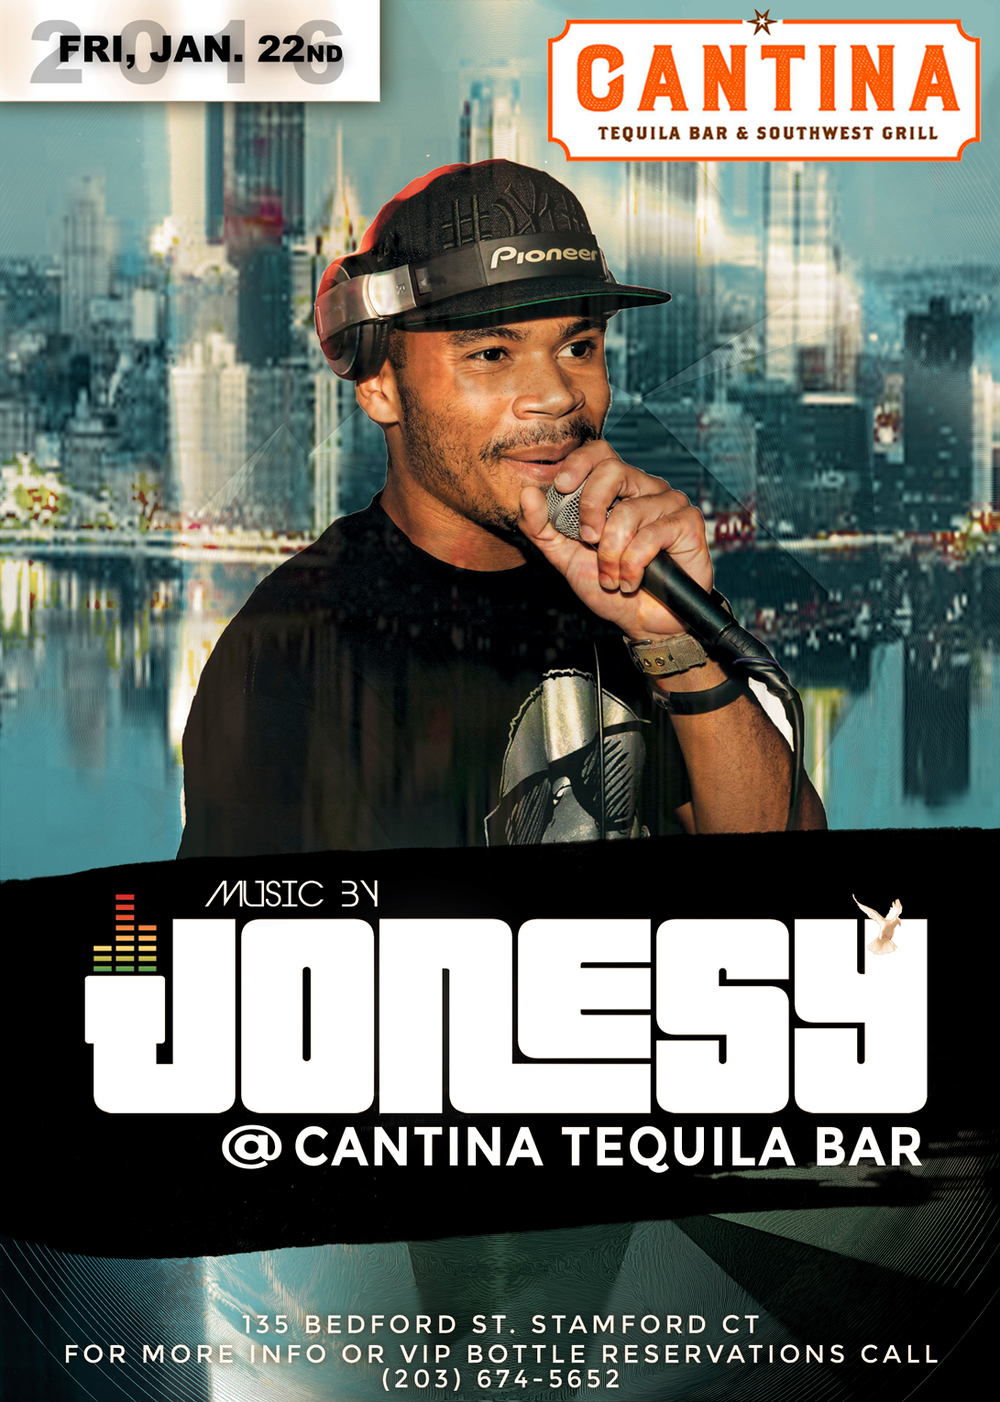 FRIDAY, JAN. 22ND JOIN US AT CANTINA TEQUILA BAR 9PM FOR MUSIC BY JONESY!  NO COVER, SEE YOU THERE!